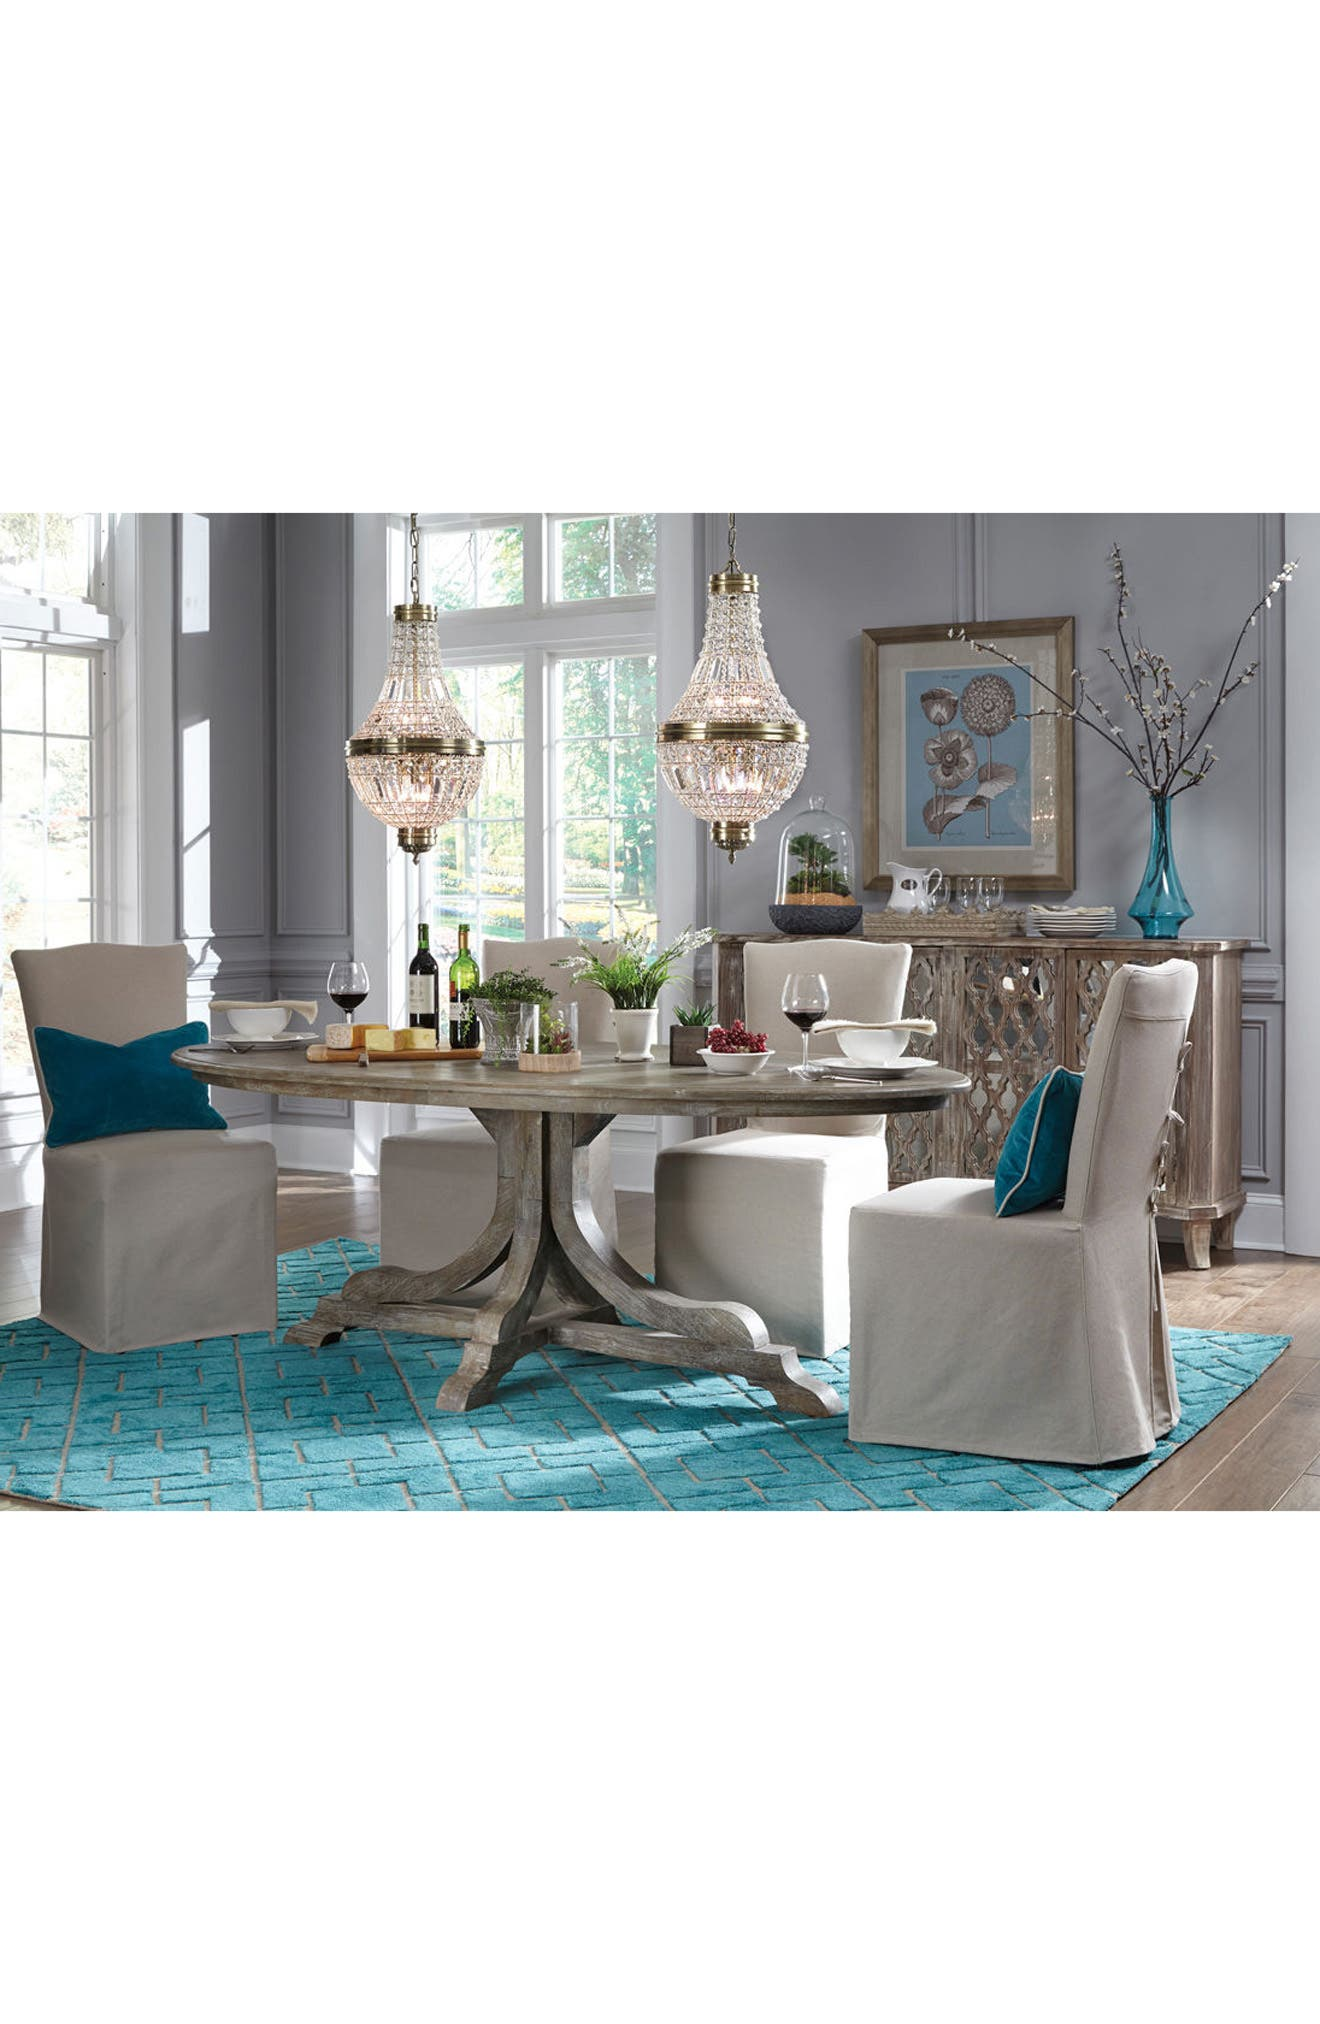 VILLA HOME COLLECTION,                             'Over Tufted - Turquoise' Rug,                             Alternate thumbnail 2, color,                             440